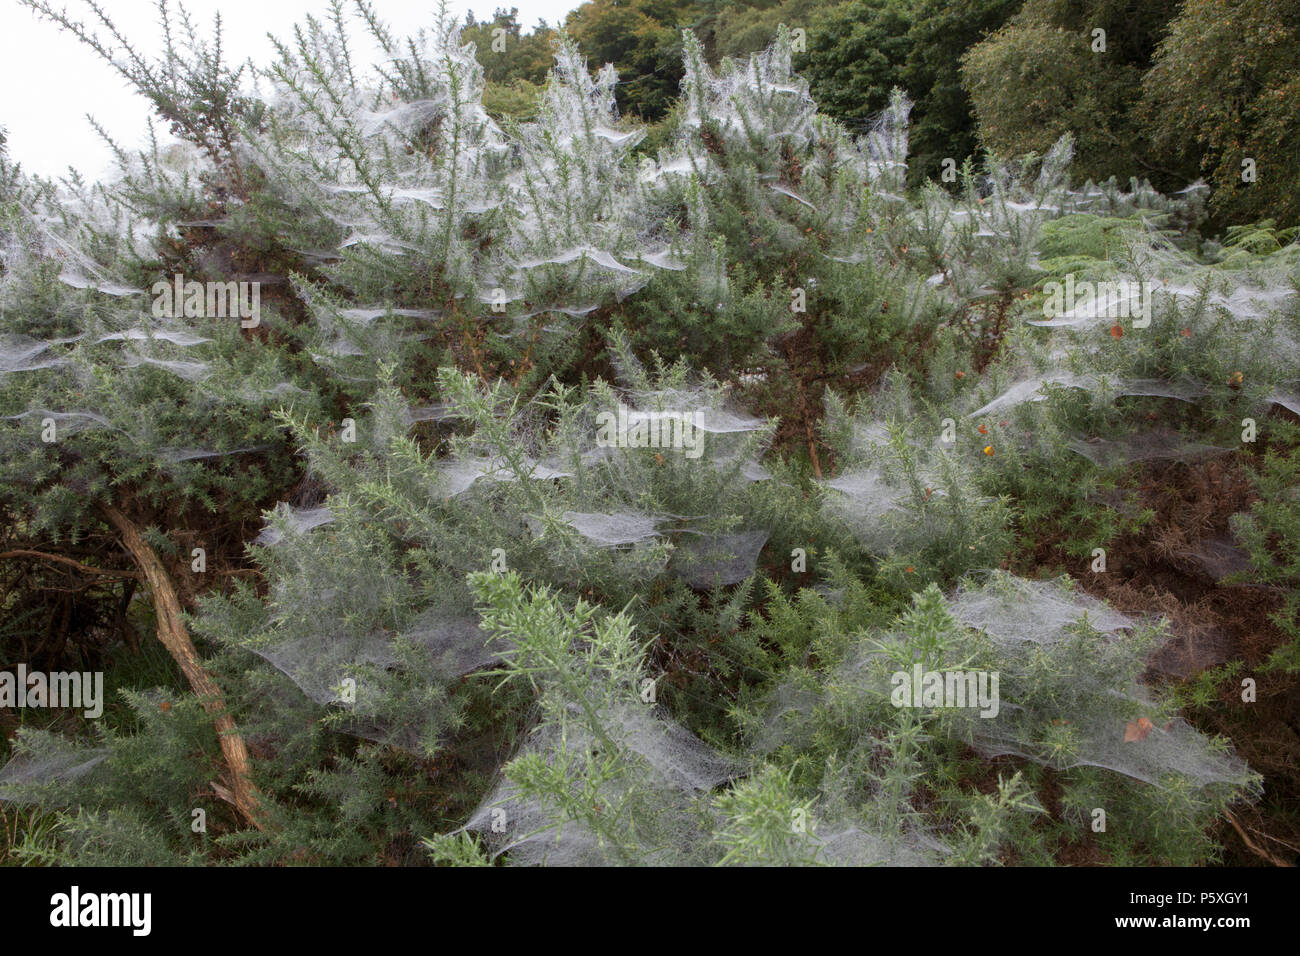 Thousands of spiders webs cover gorse bushes at Glendalough in County Wicklow, Ireland - Stock Image